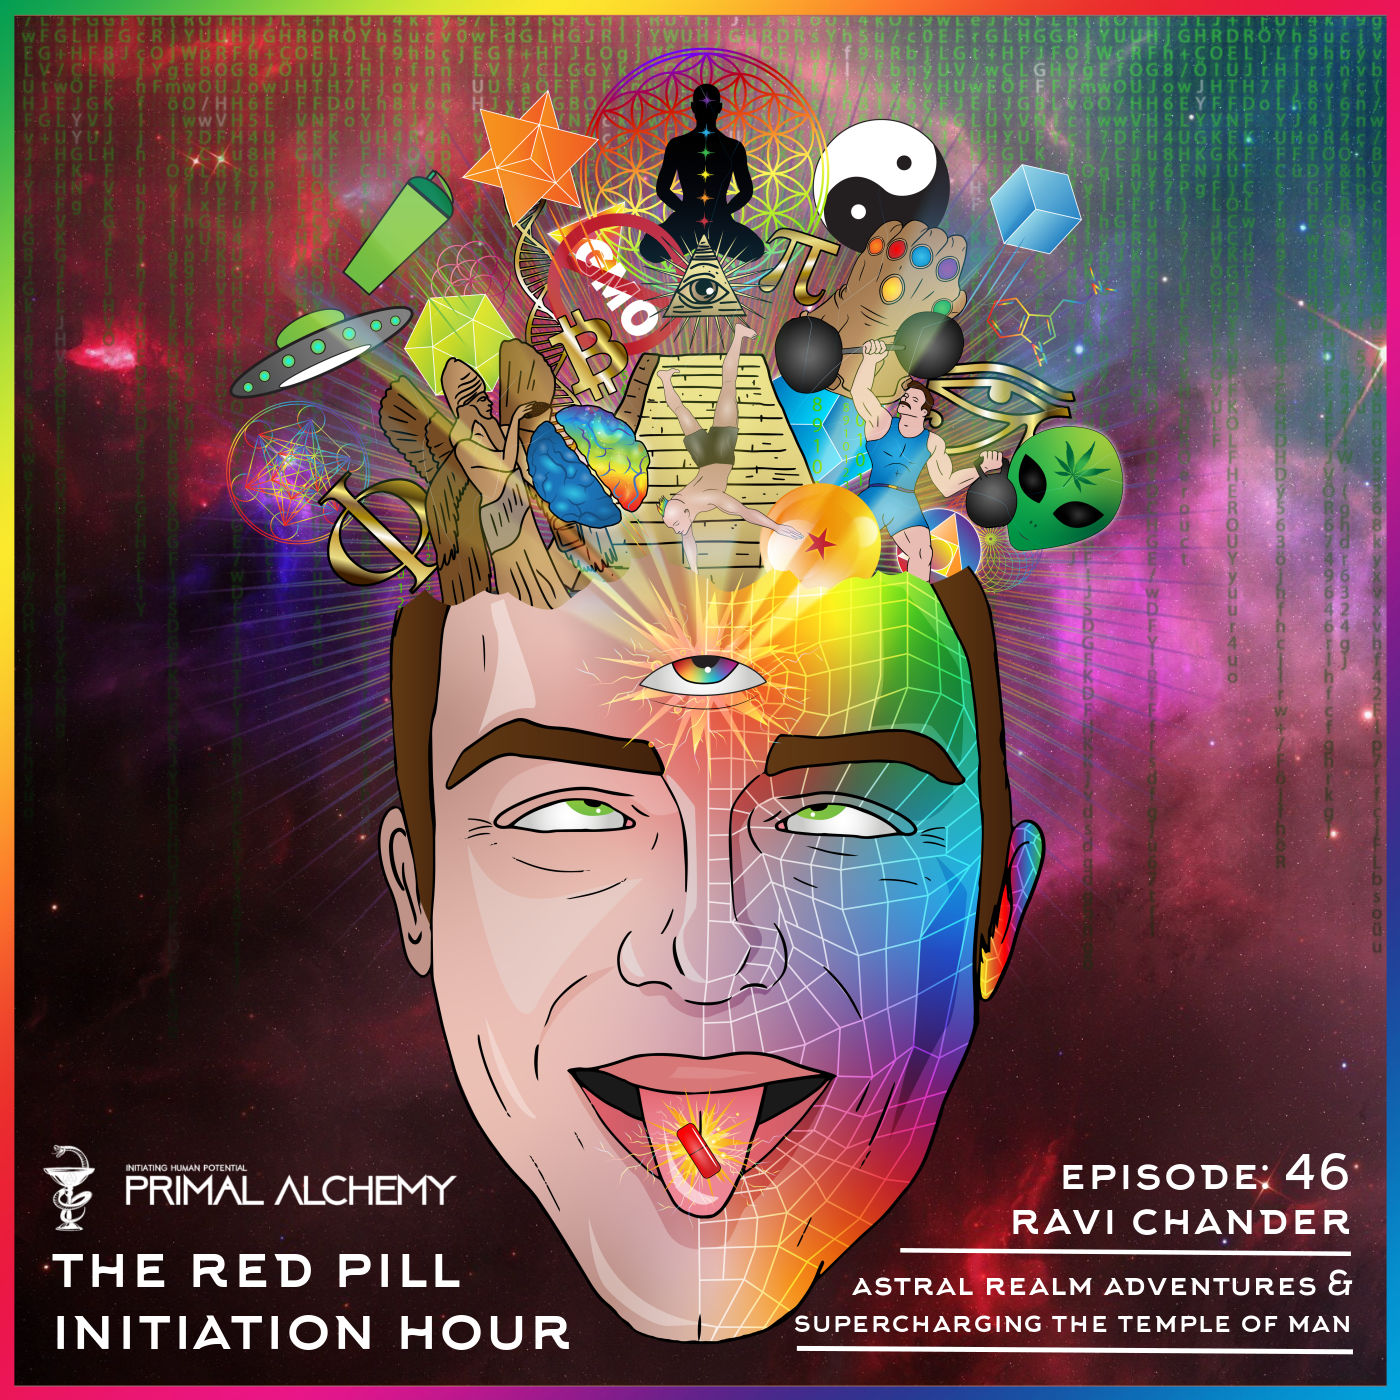 Ep 46 - Ravi Chander - Astral Realm Adventures & Supercharging the Temple of Man